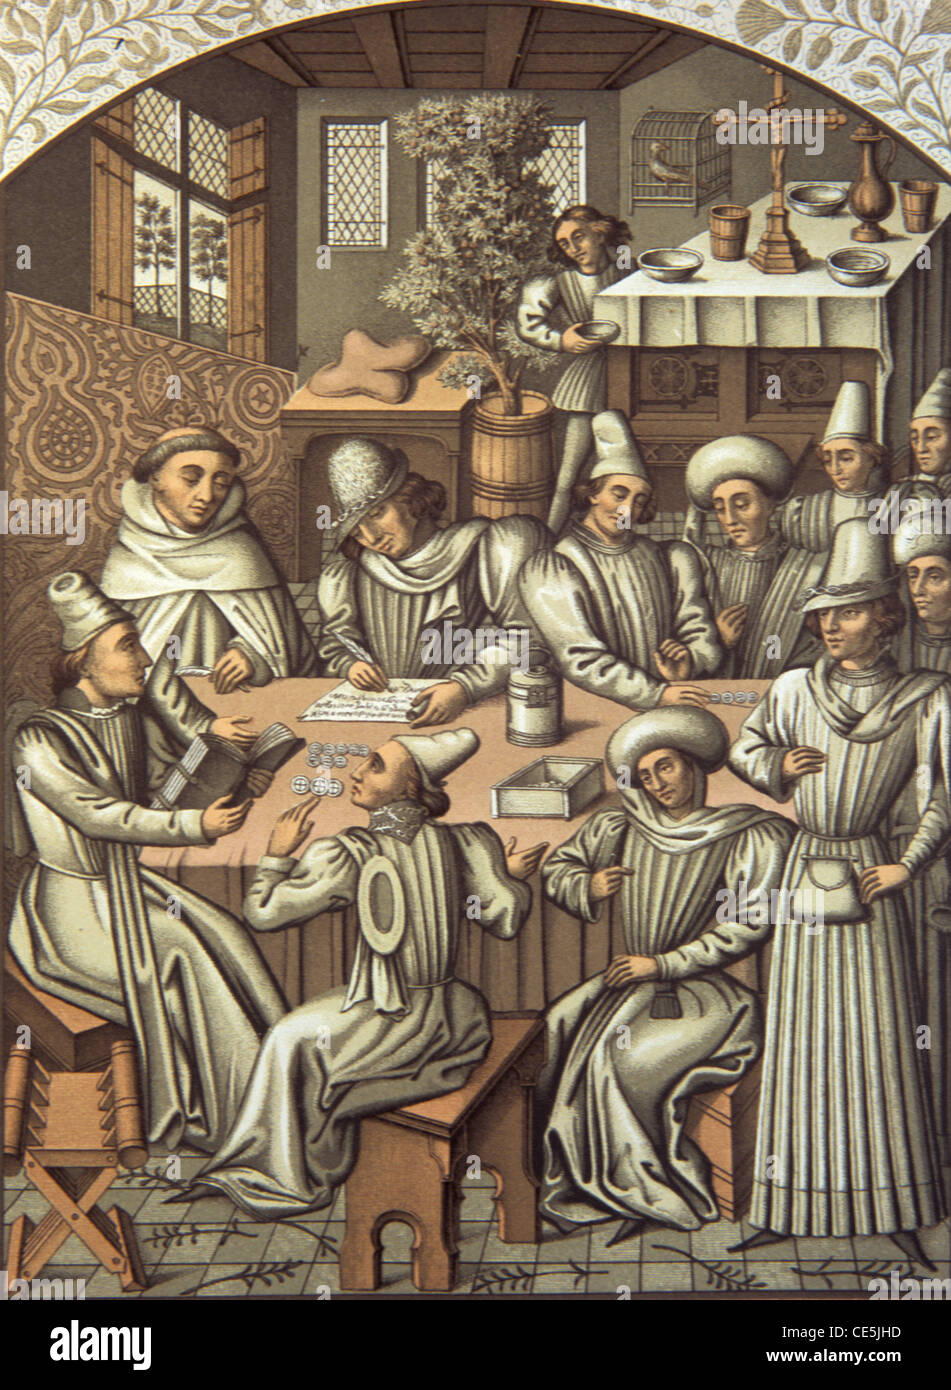 Medieval Bookkeeping , Bookkeepers, Debt Collectors, Debt Collecting or Accountants (1466) in Rouen, France - Stock Image